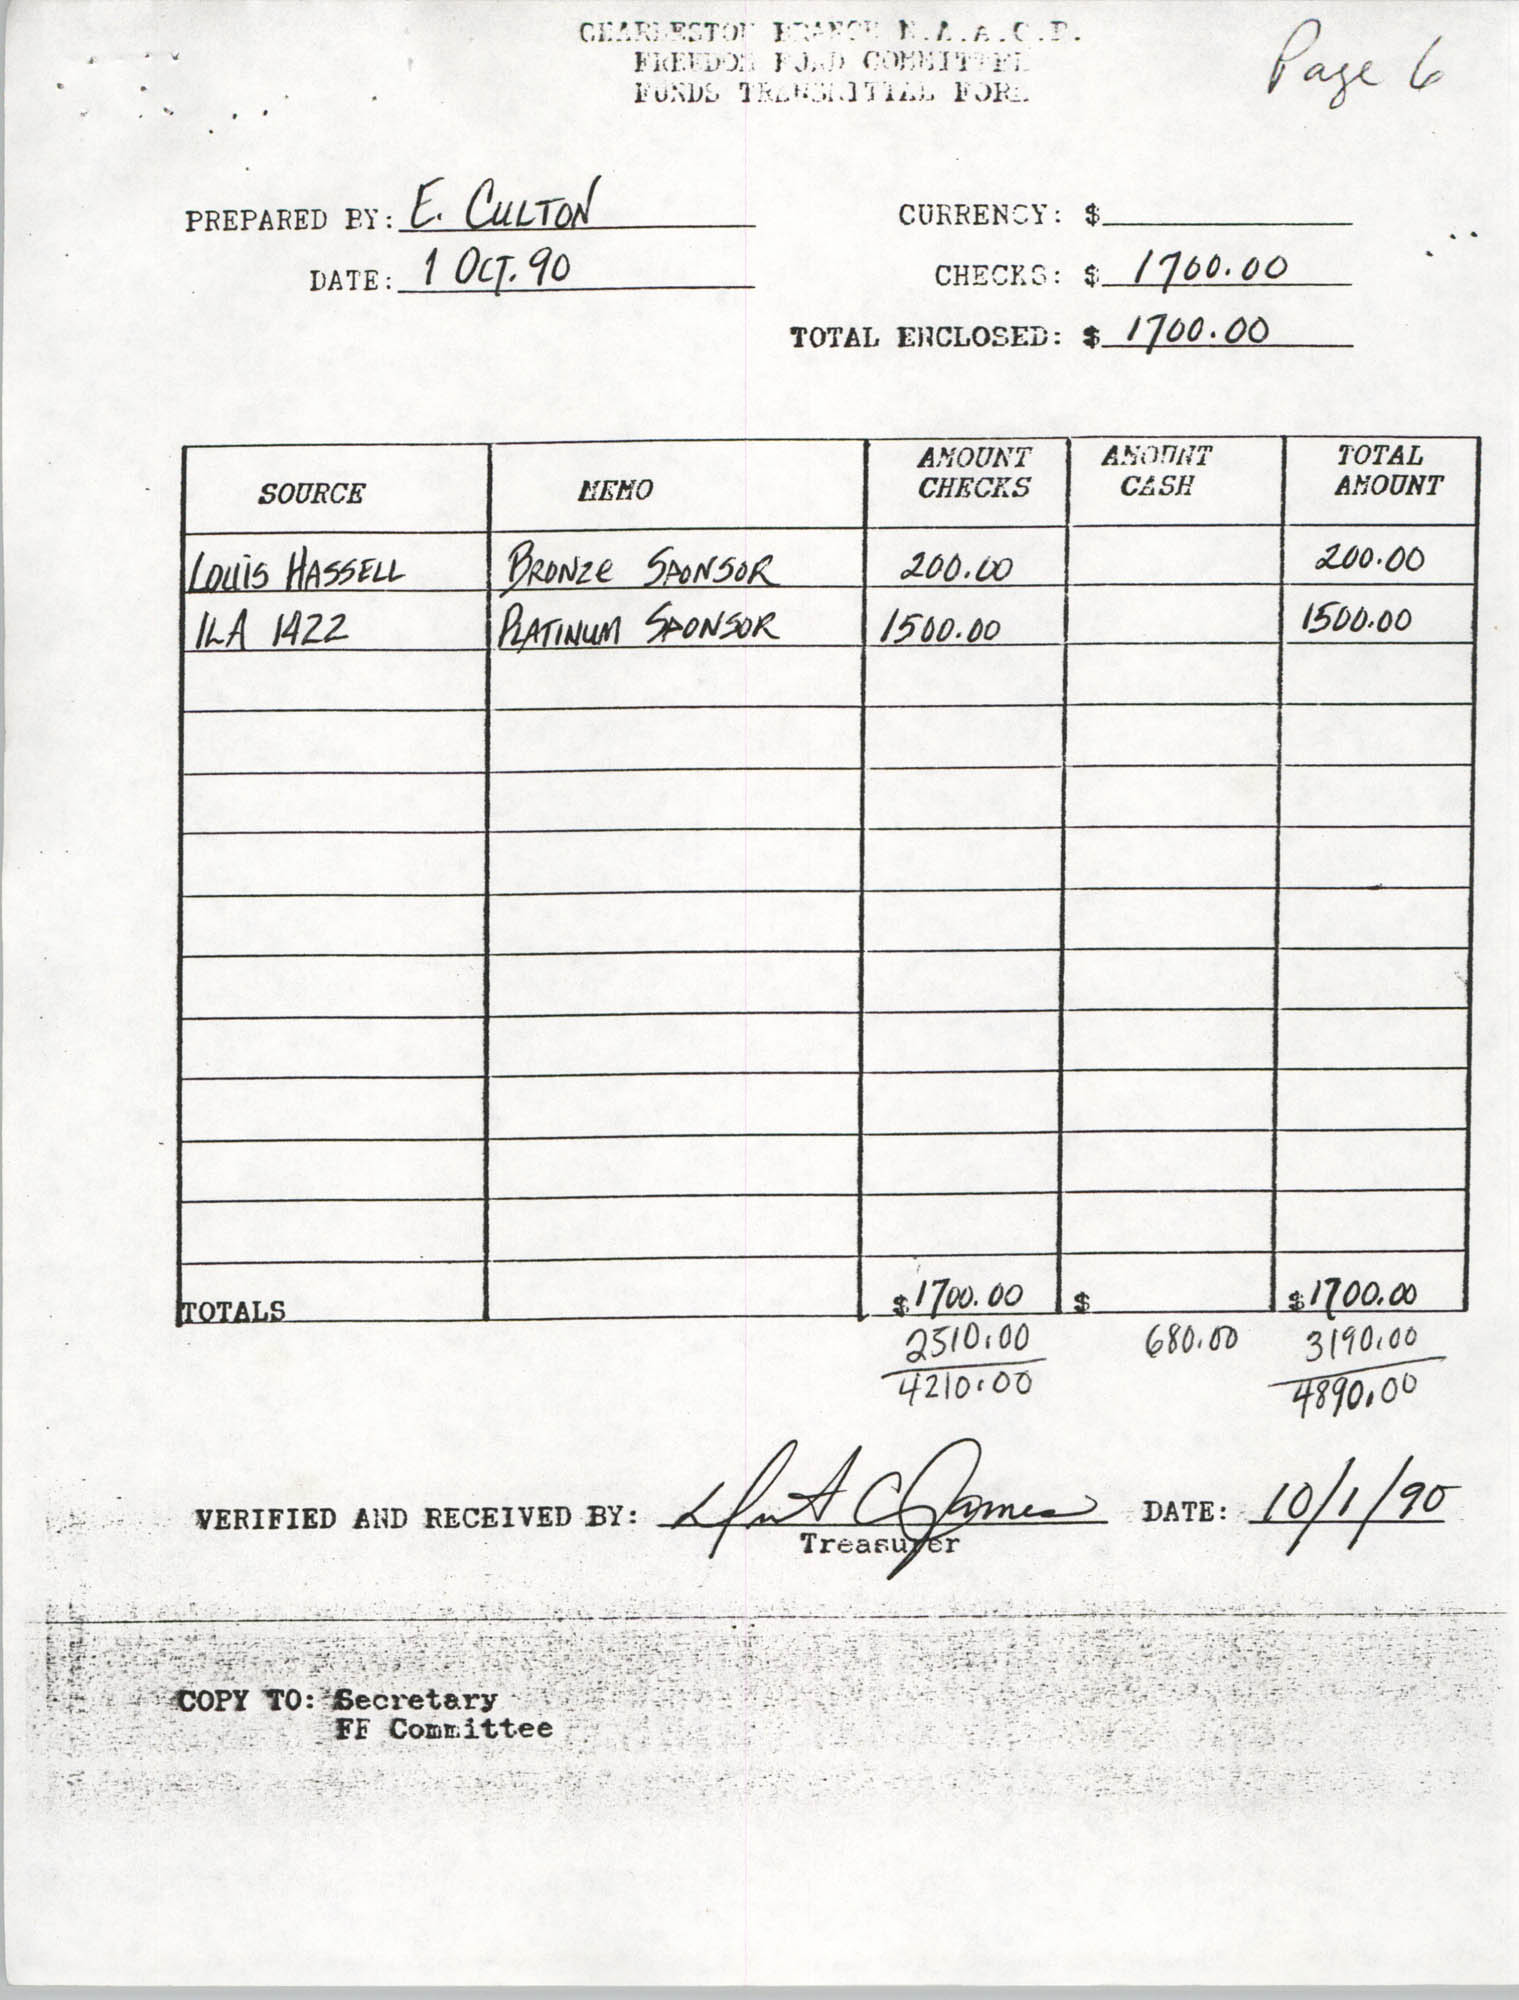 Charleston Branch of the NAACP, Funds Transmittal Forms, October 1990, Page 16